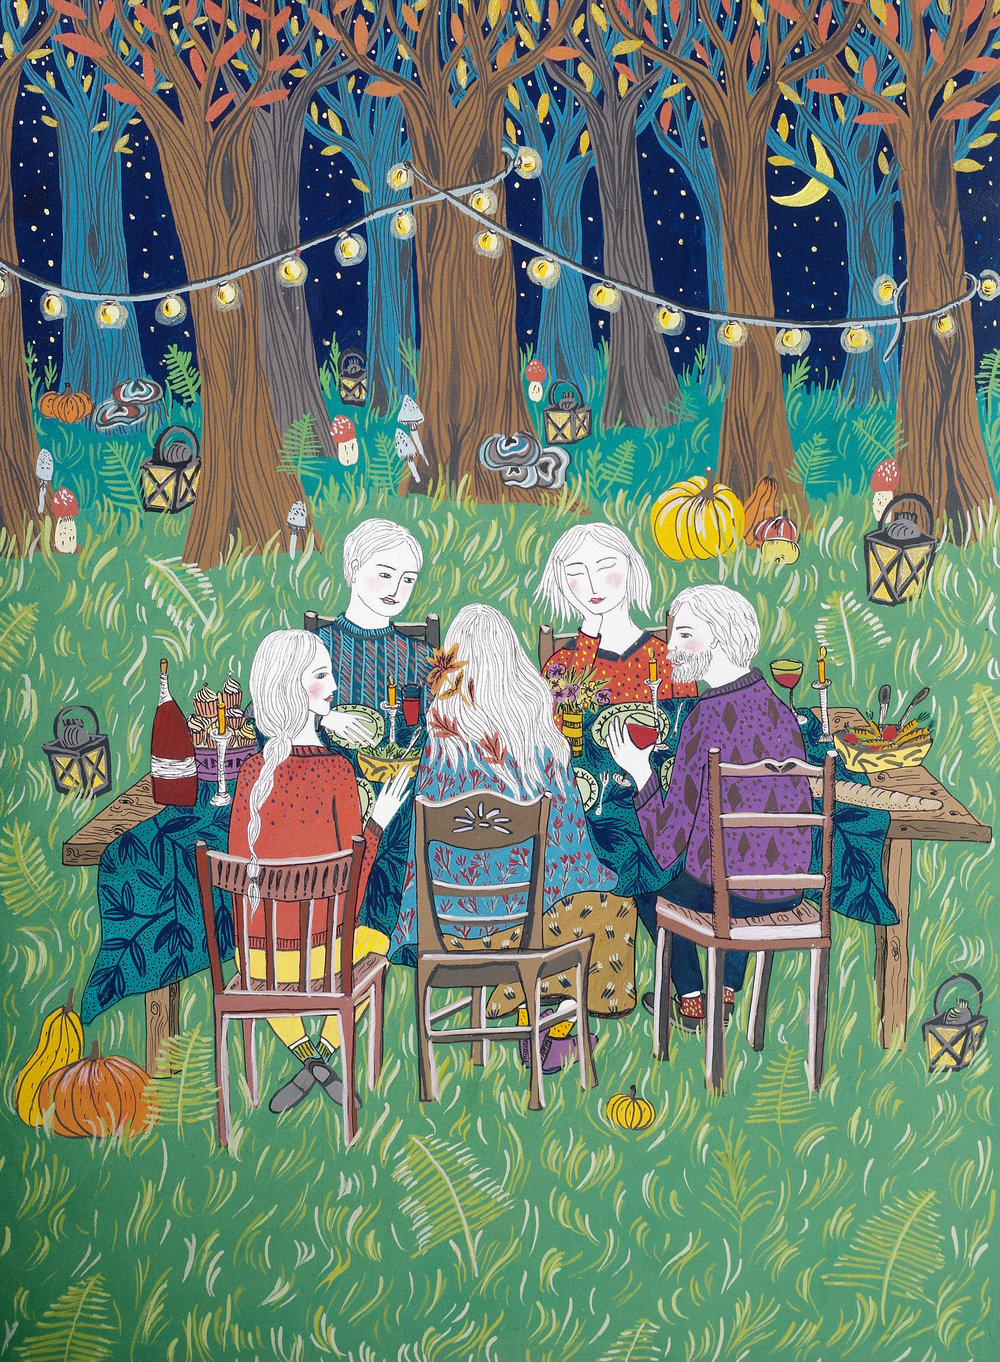 11autumnfeast_illustration_janina_bourosu.jpg